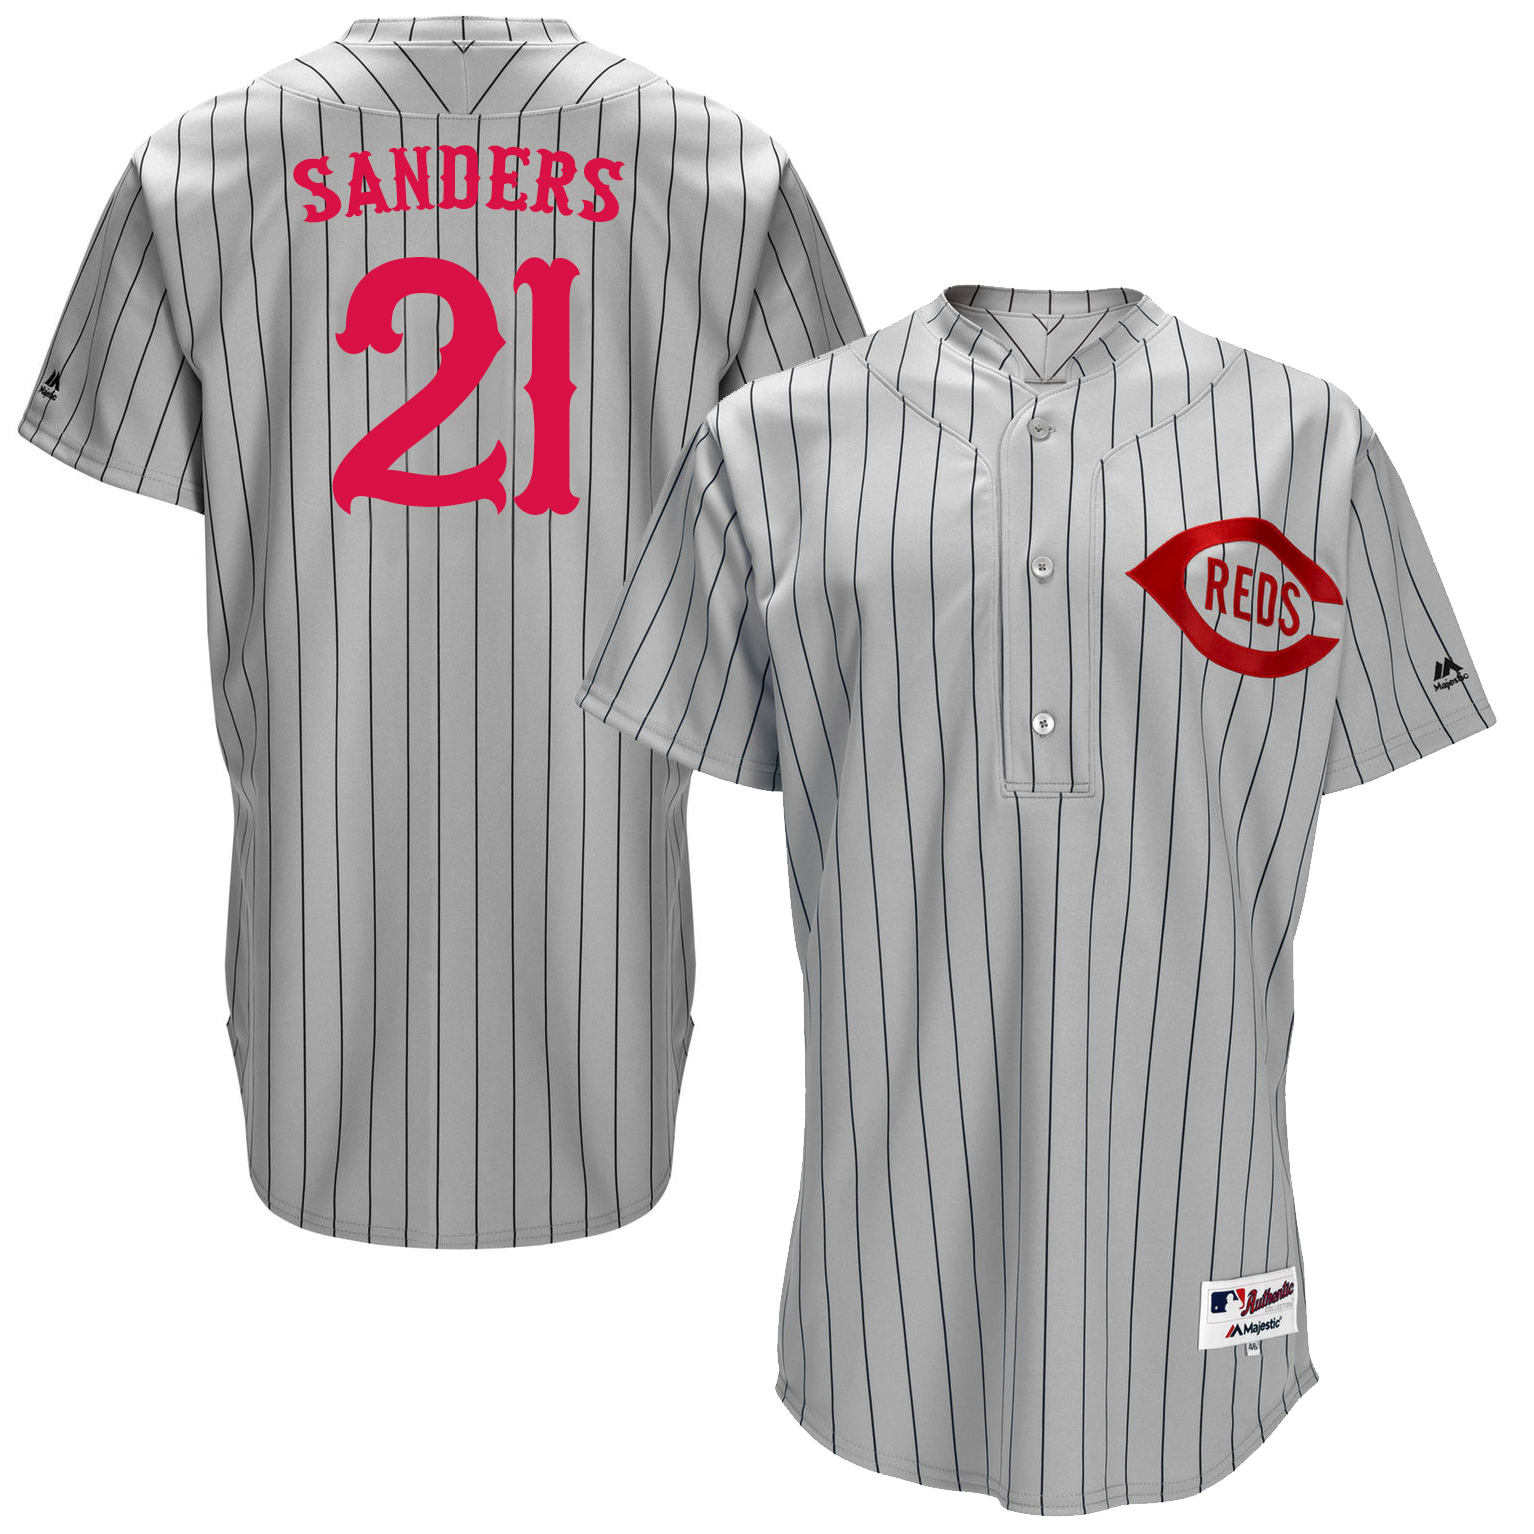 Reds 21 Deion Sanders Grey Throwback Jersey